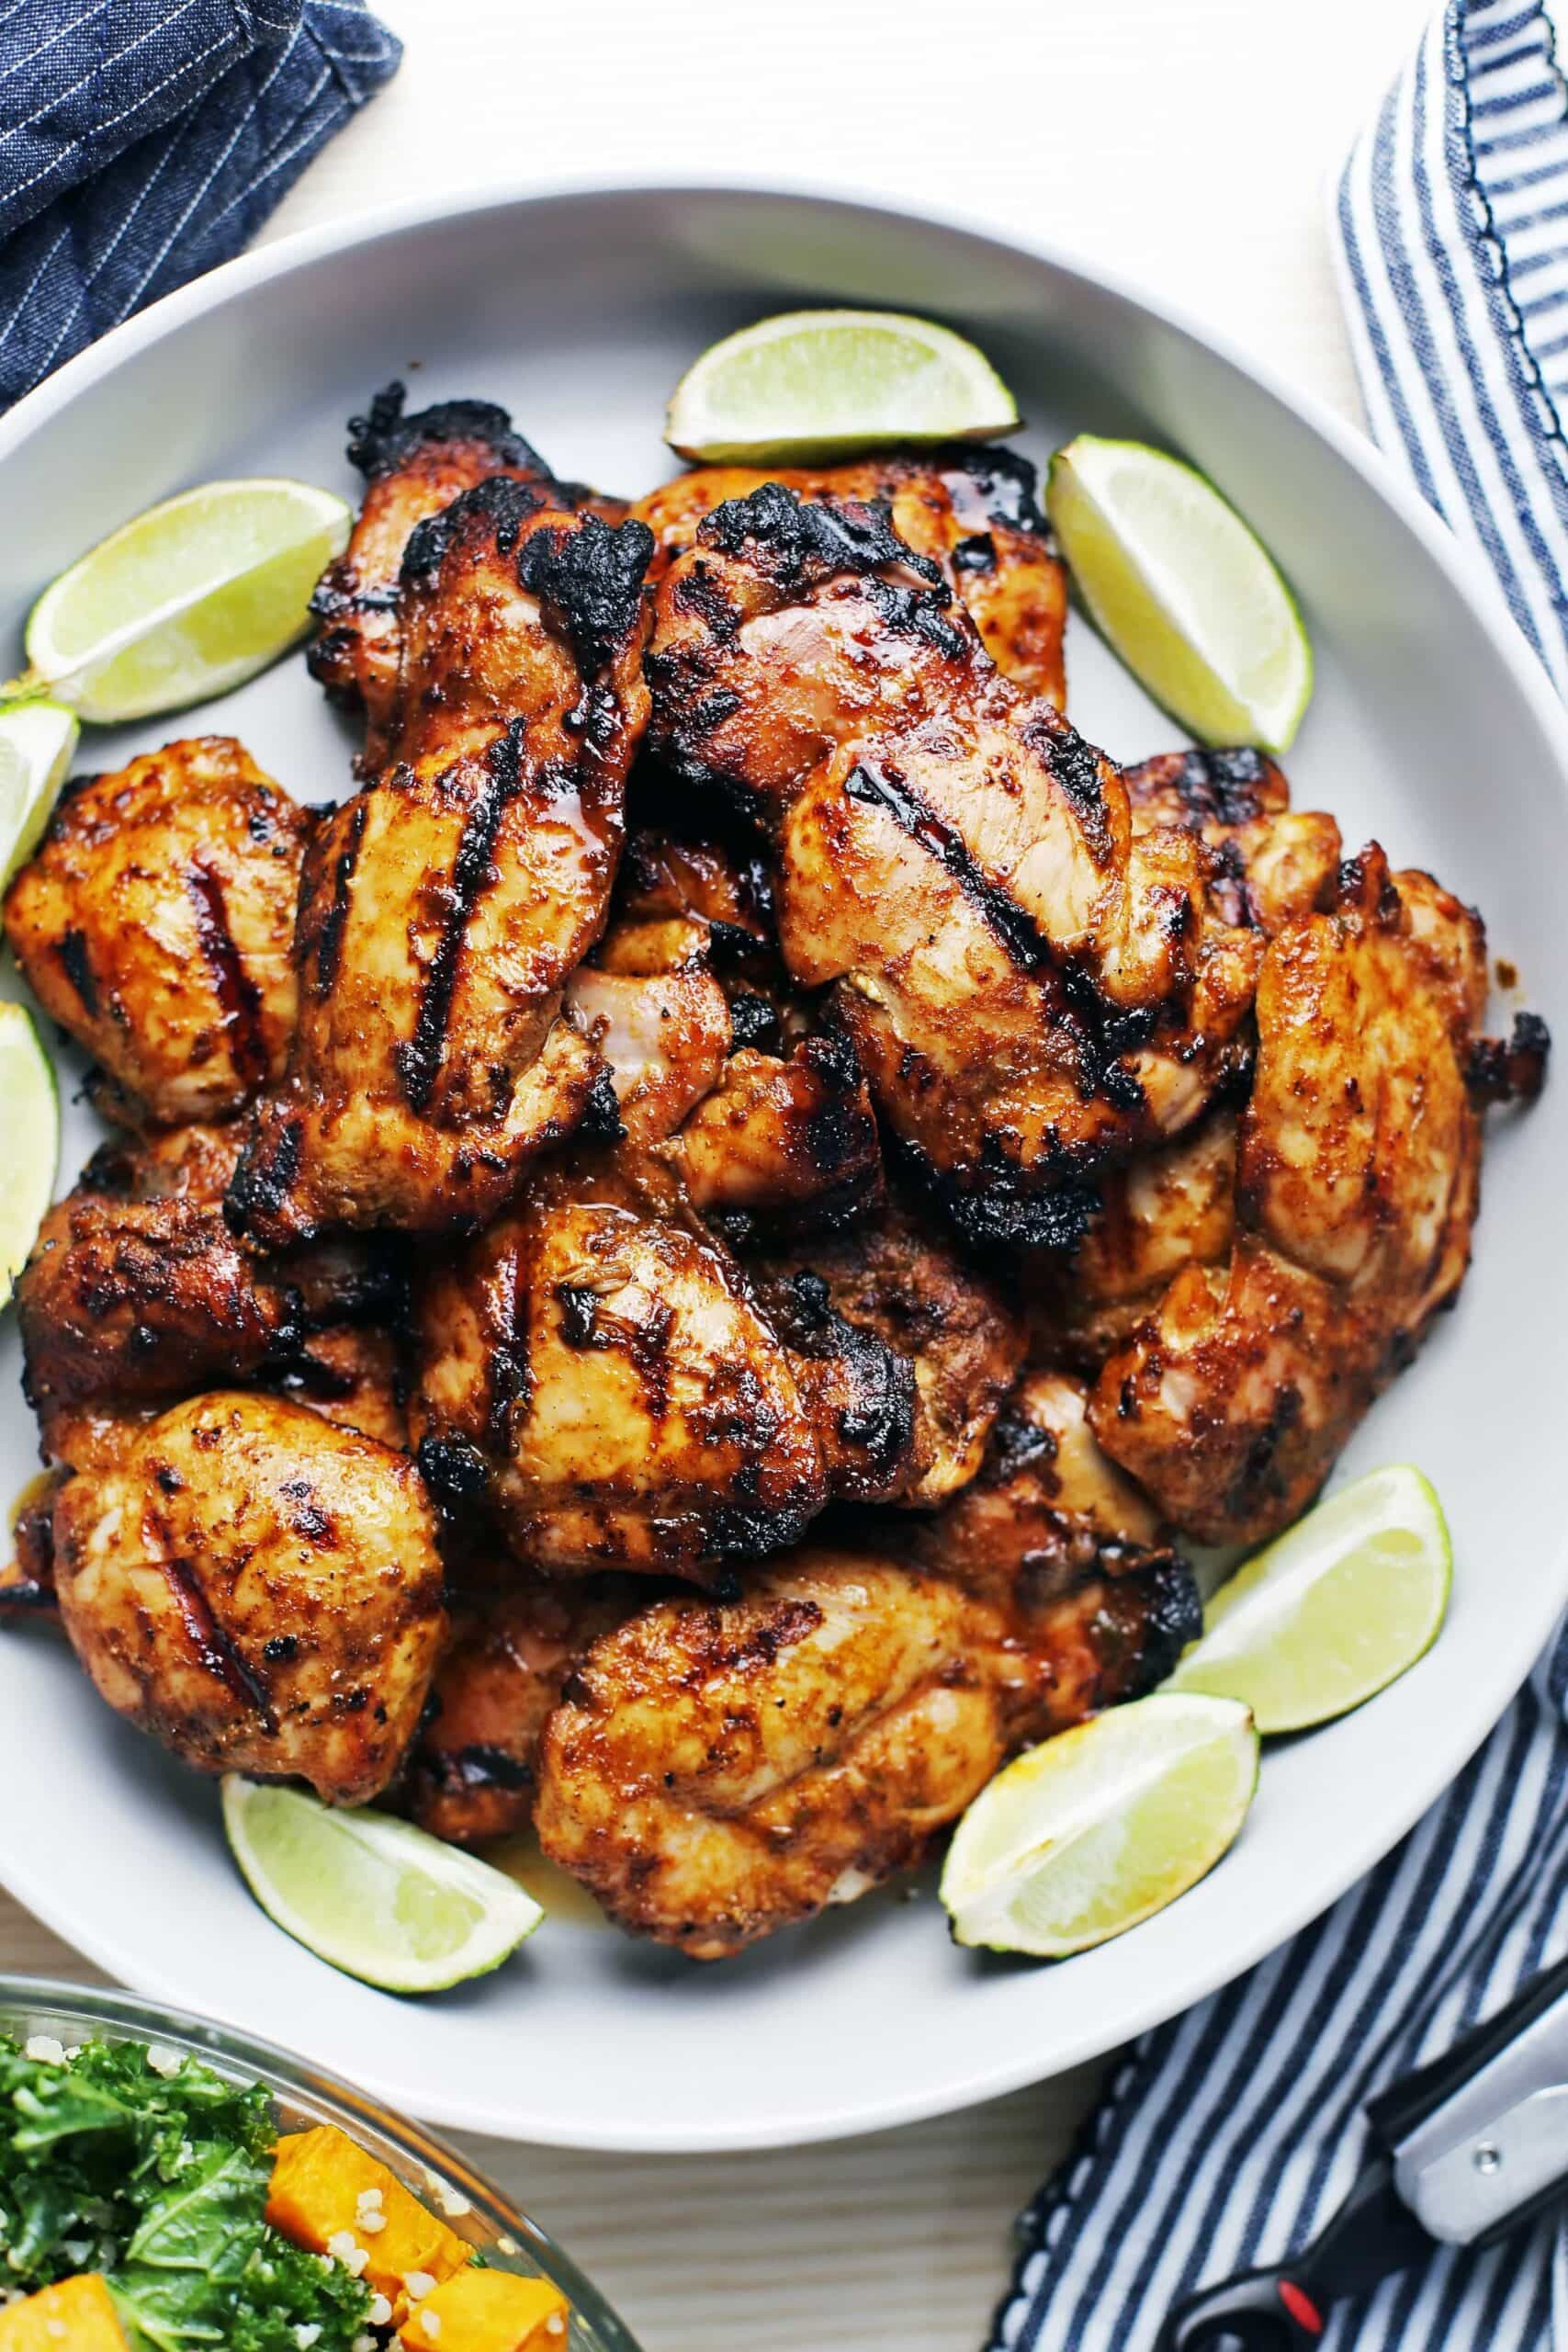 Chicken Thighs Chili  Grilled Chili Lime Chicken Thighs Yay For Food